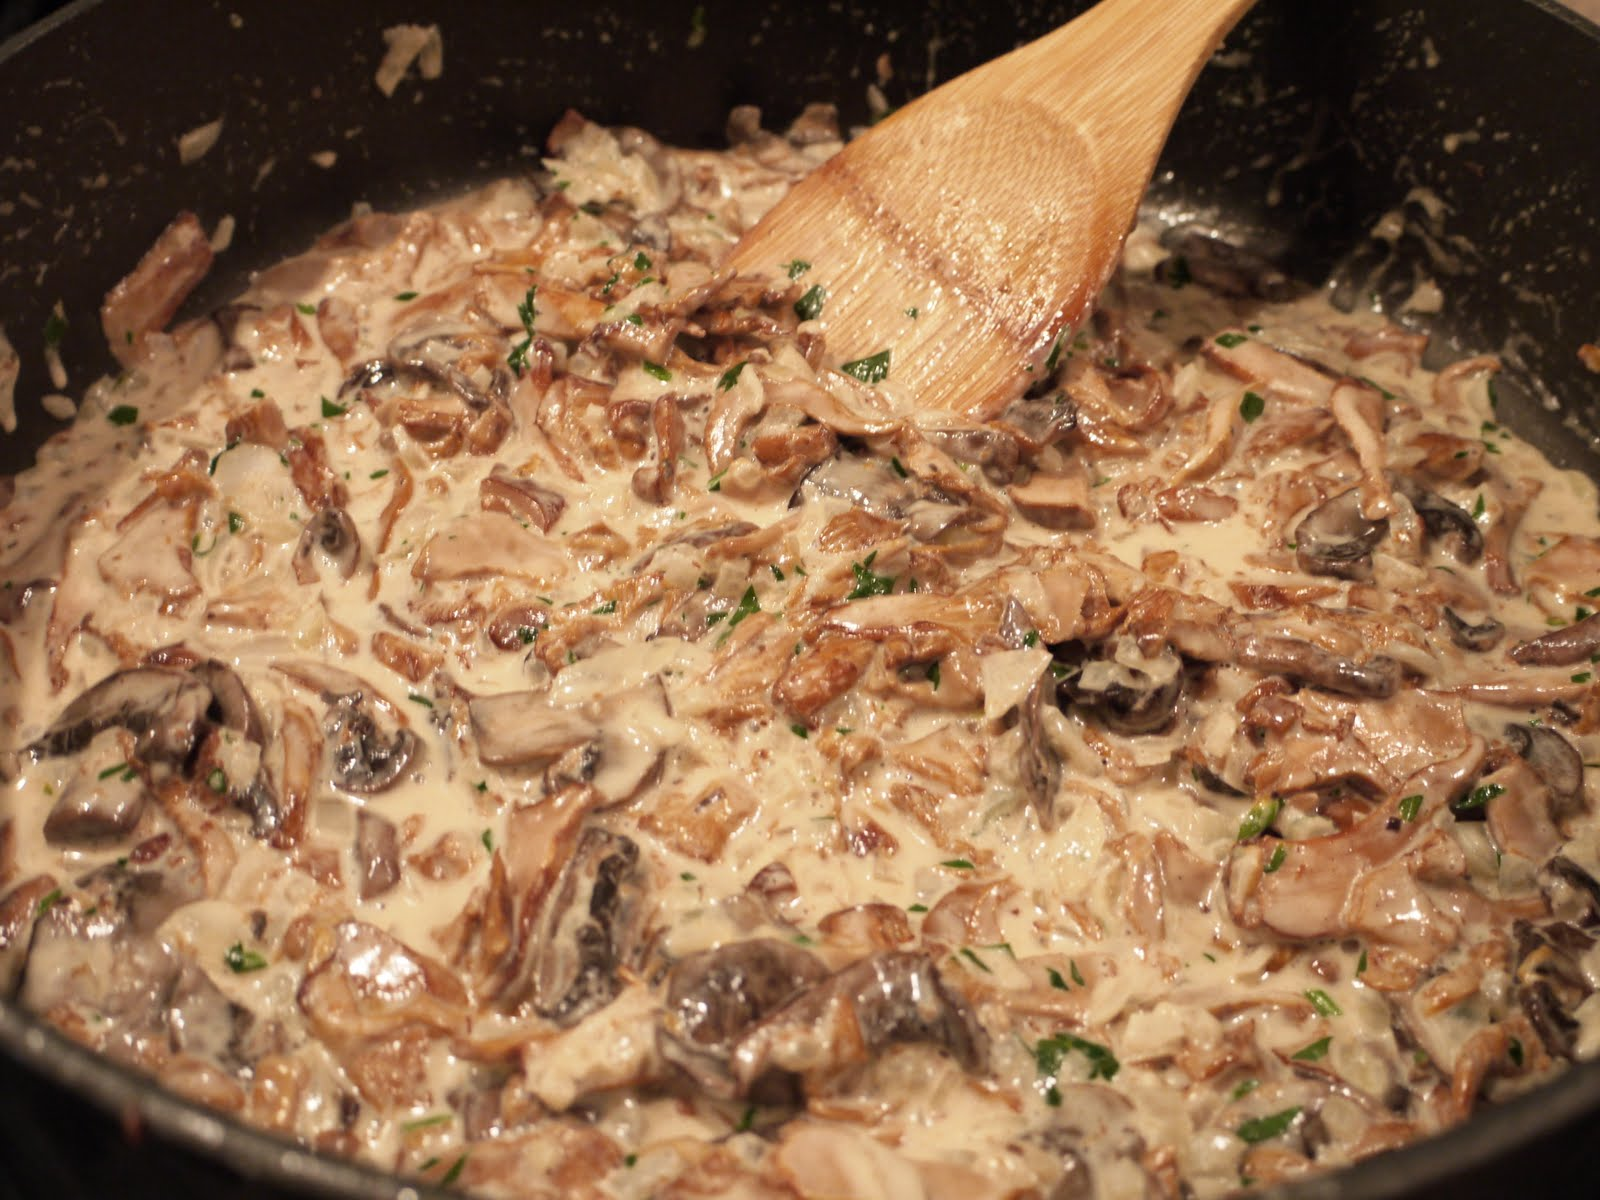 wild mushrooms a la crème serves 8 mushrooms a la